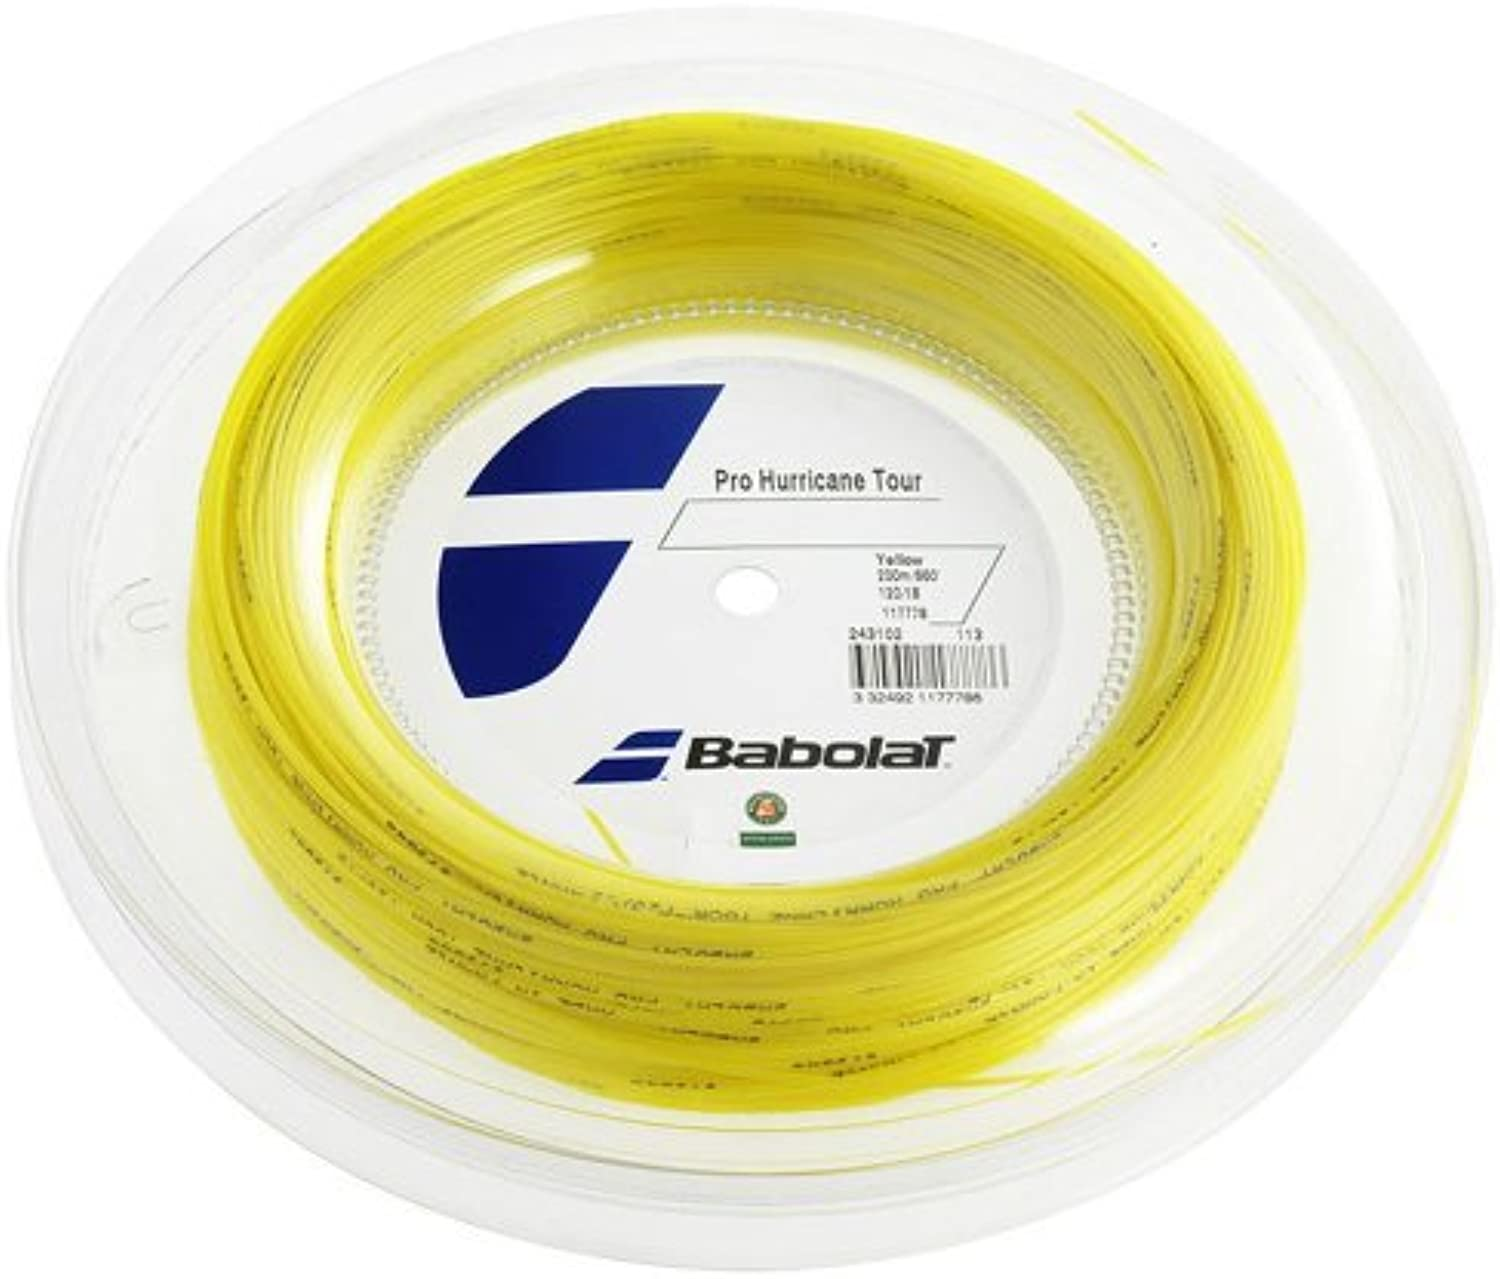 Babolat Pro Hurricane Tour (16g1.30mm) Tennis String Reel (660') by Babolat